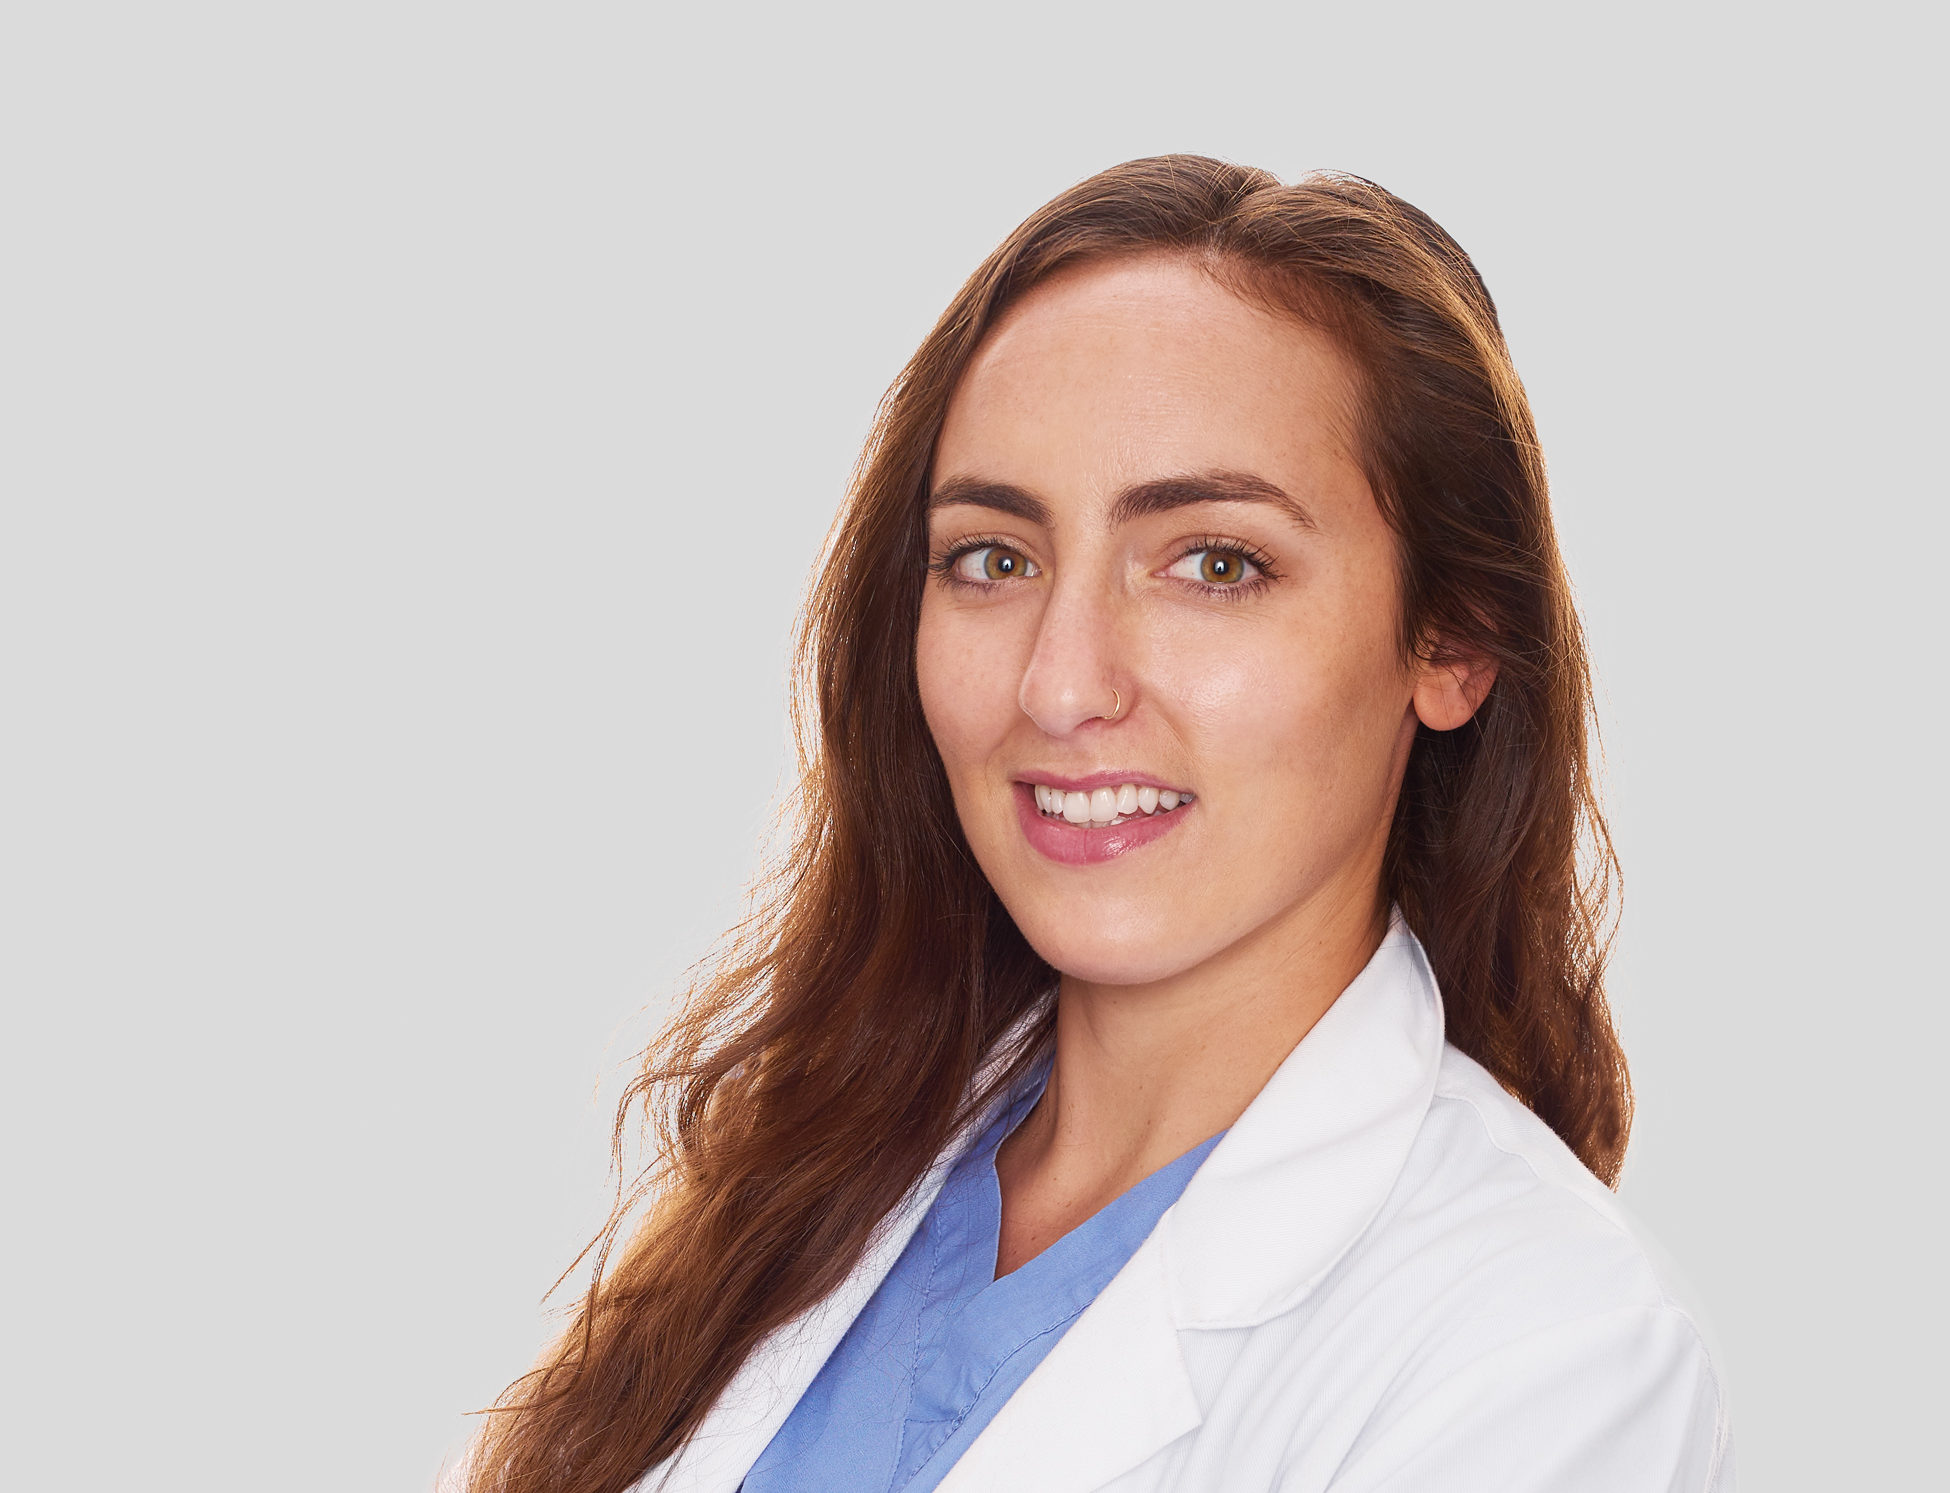 Dr. Jessica Himelman of the Animal Medical Center in New York City